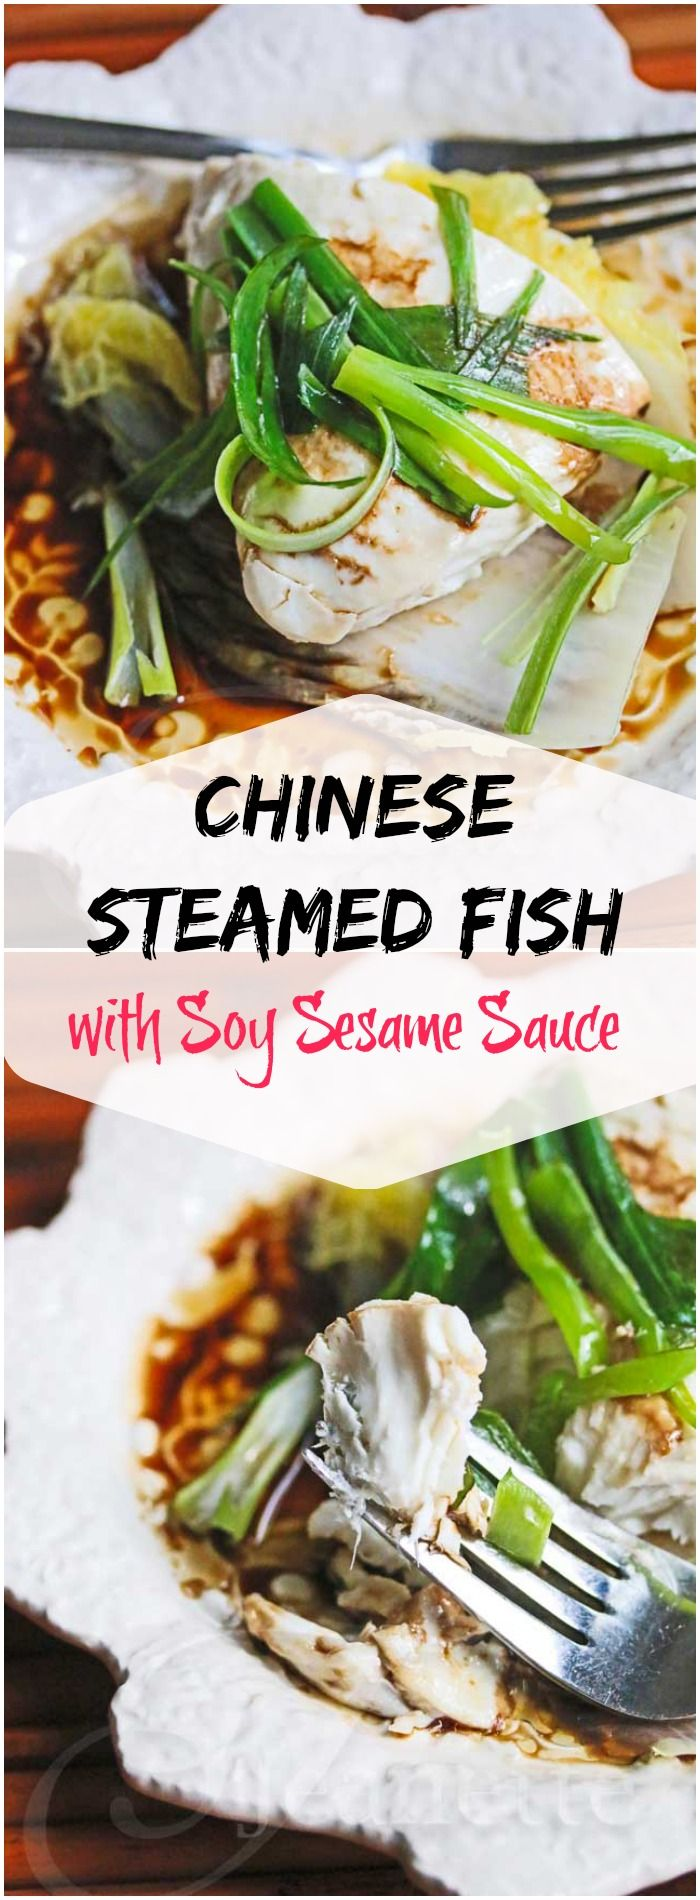 I usually don't like fish, but this looks so good: Chinese Steamed Fish with Soy Sesame Sauce #fish #dinner #video